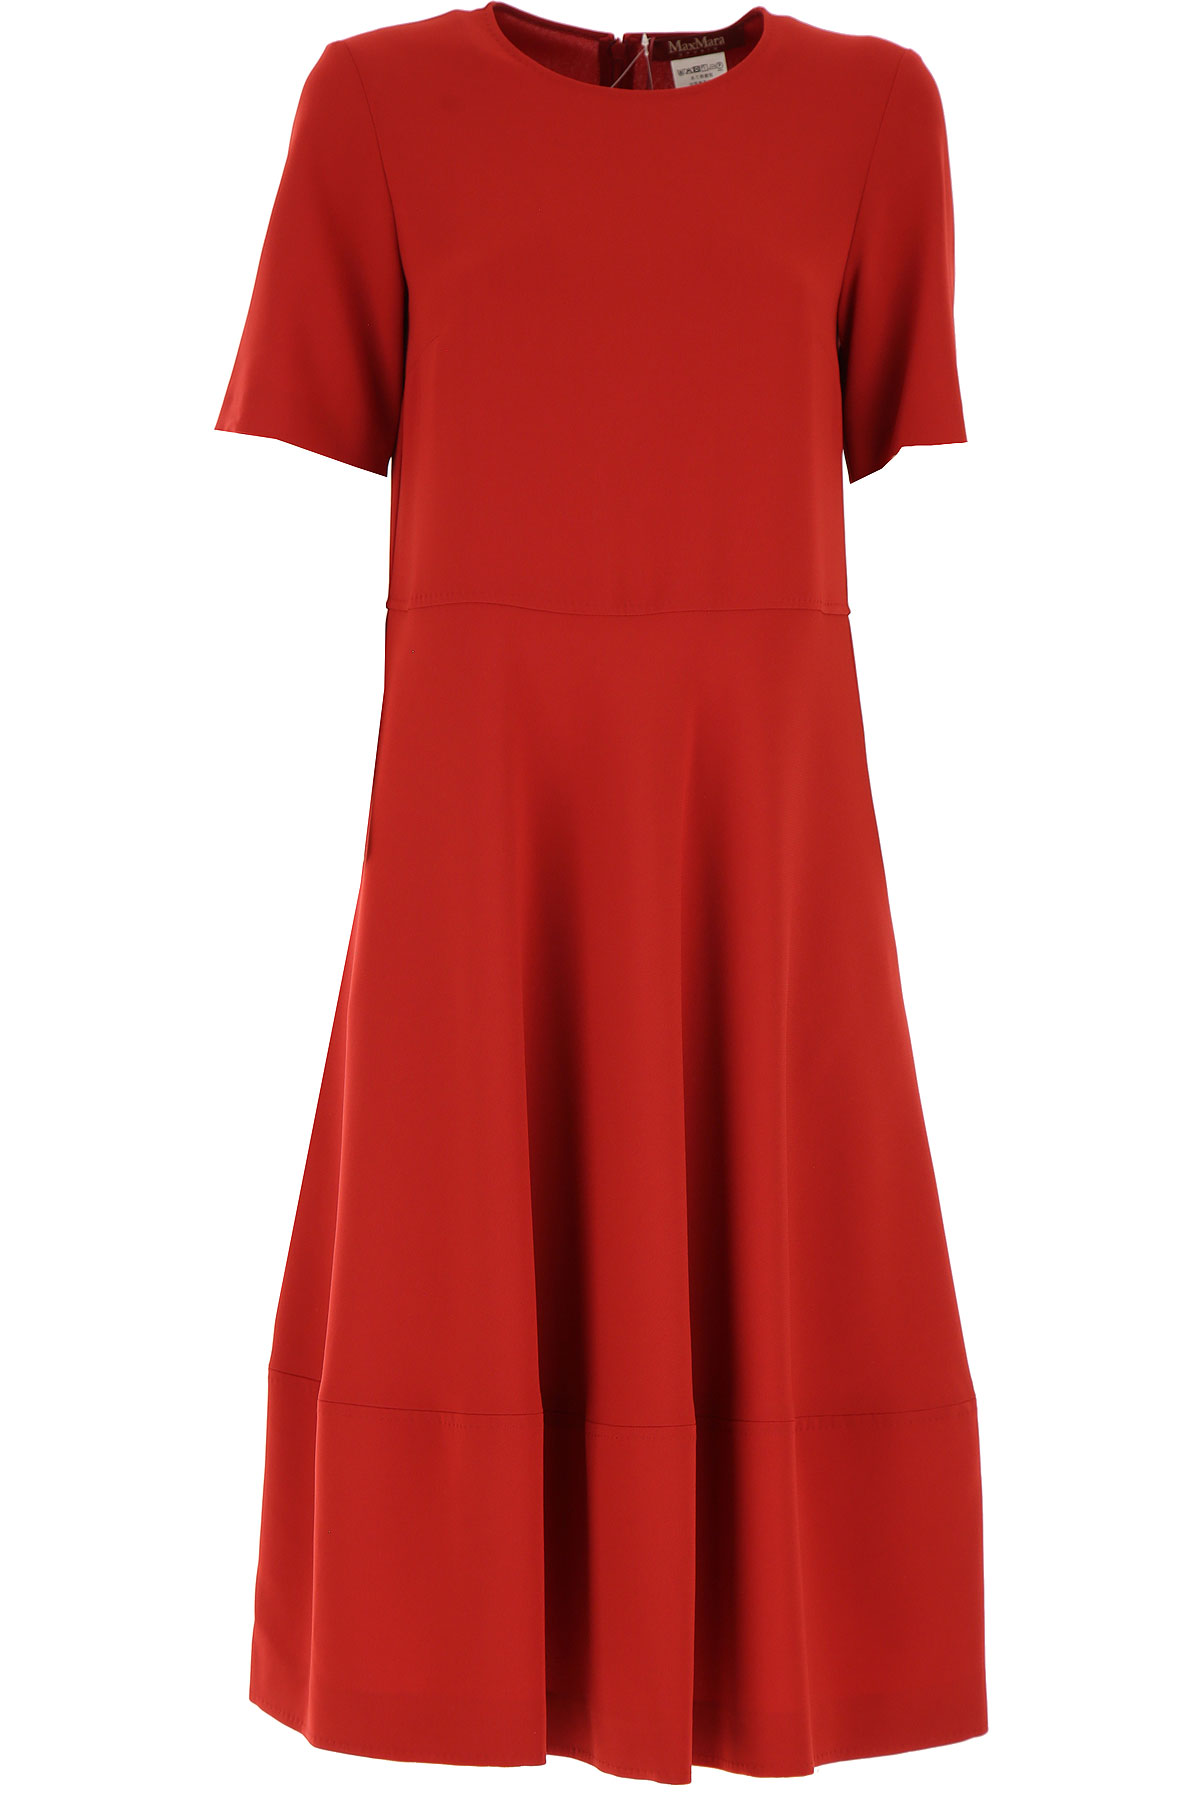 Max Mara Dress for Women, Evening Cocktail Party On Sale, Acacia Red, Triacetate, 2019, 4 6